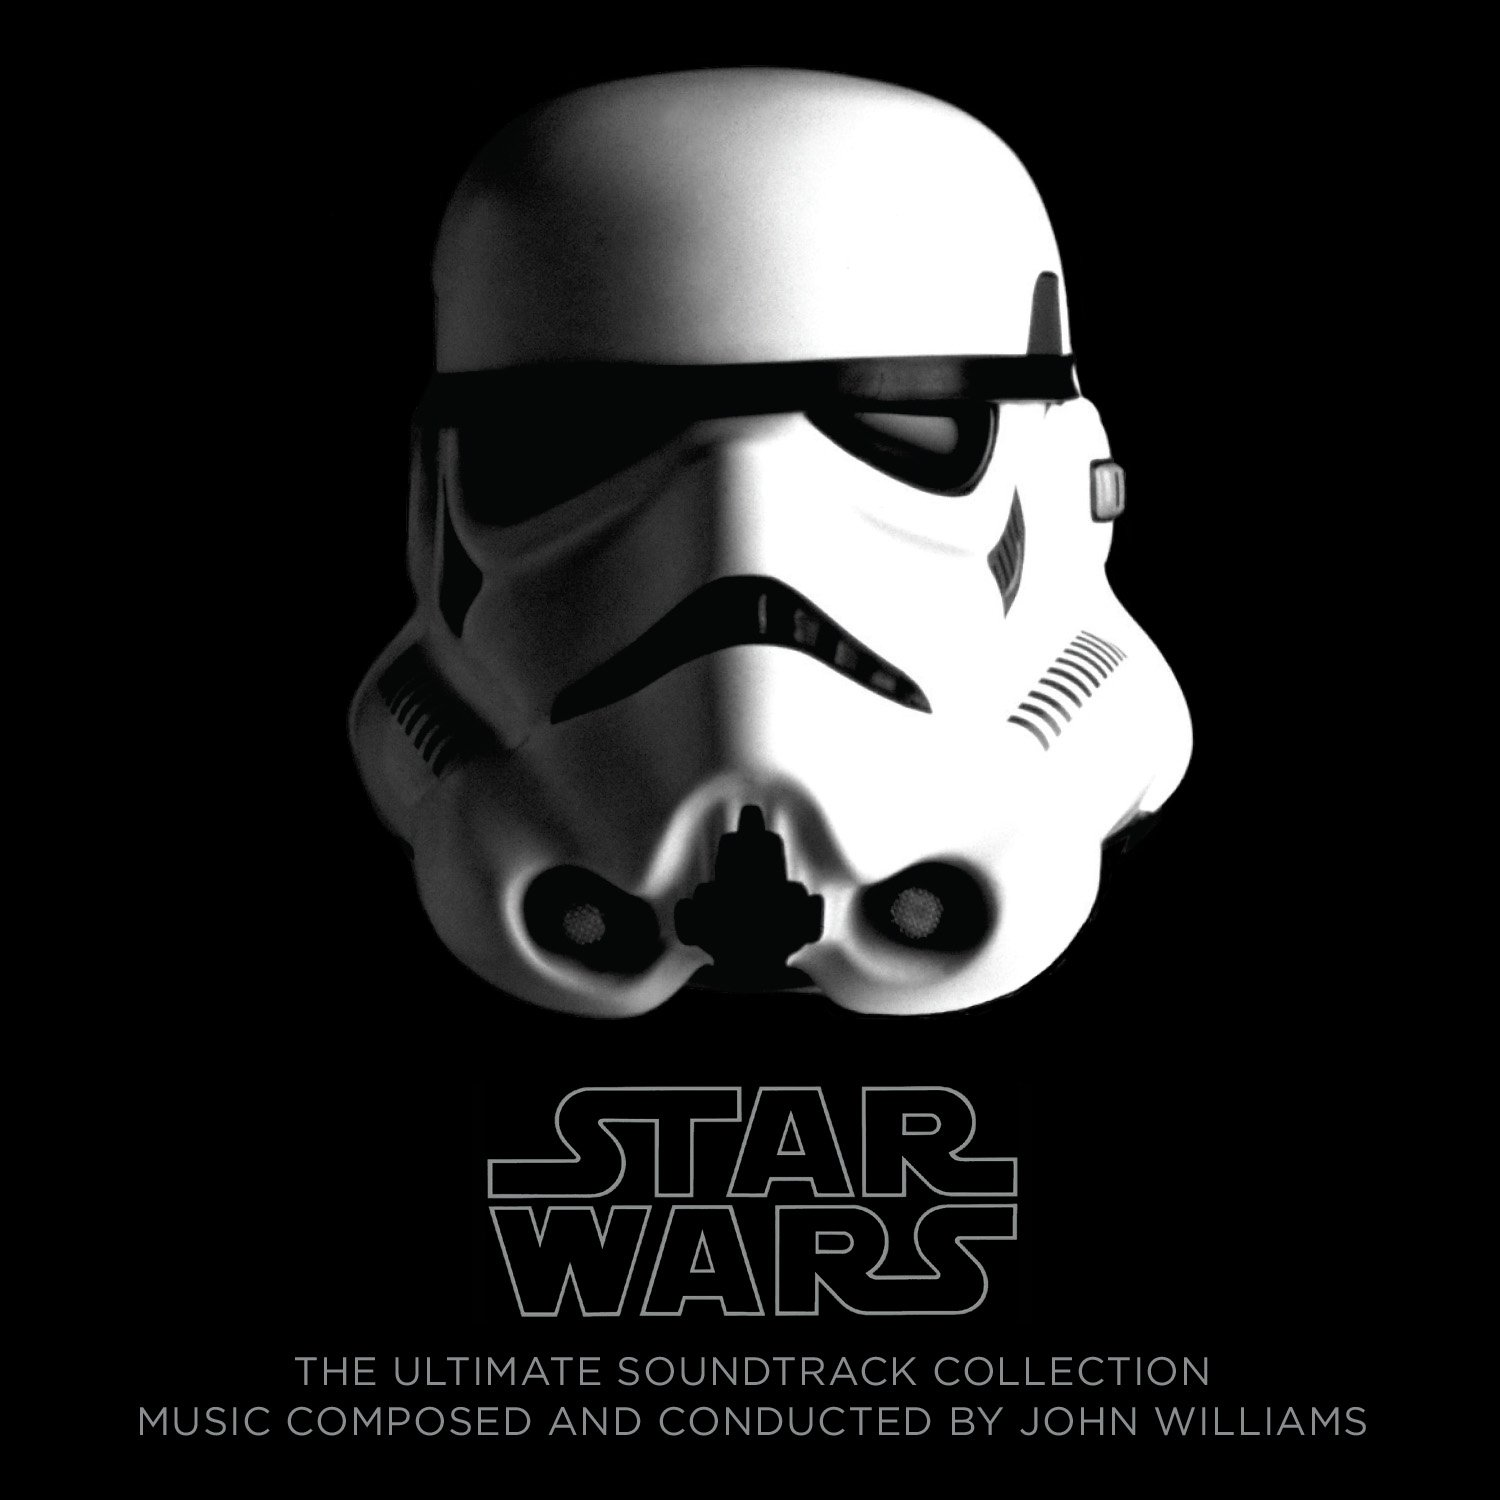 Star Wars - The Ultimate Soundtrack Collection by CD